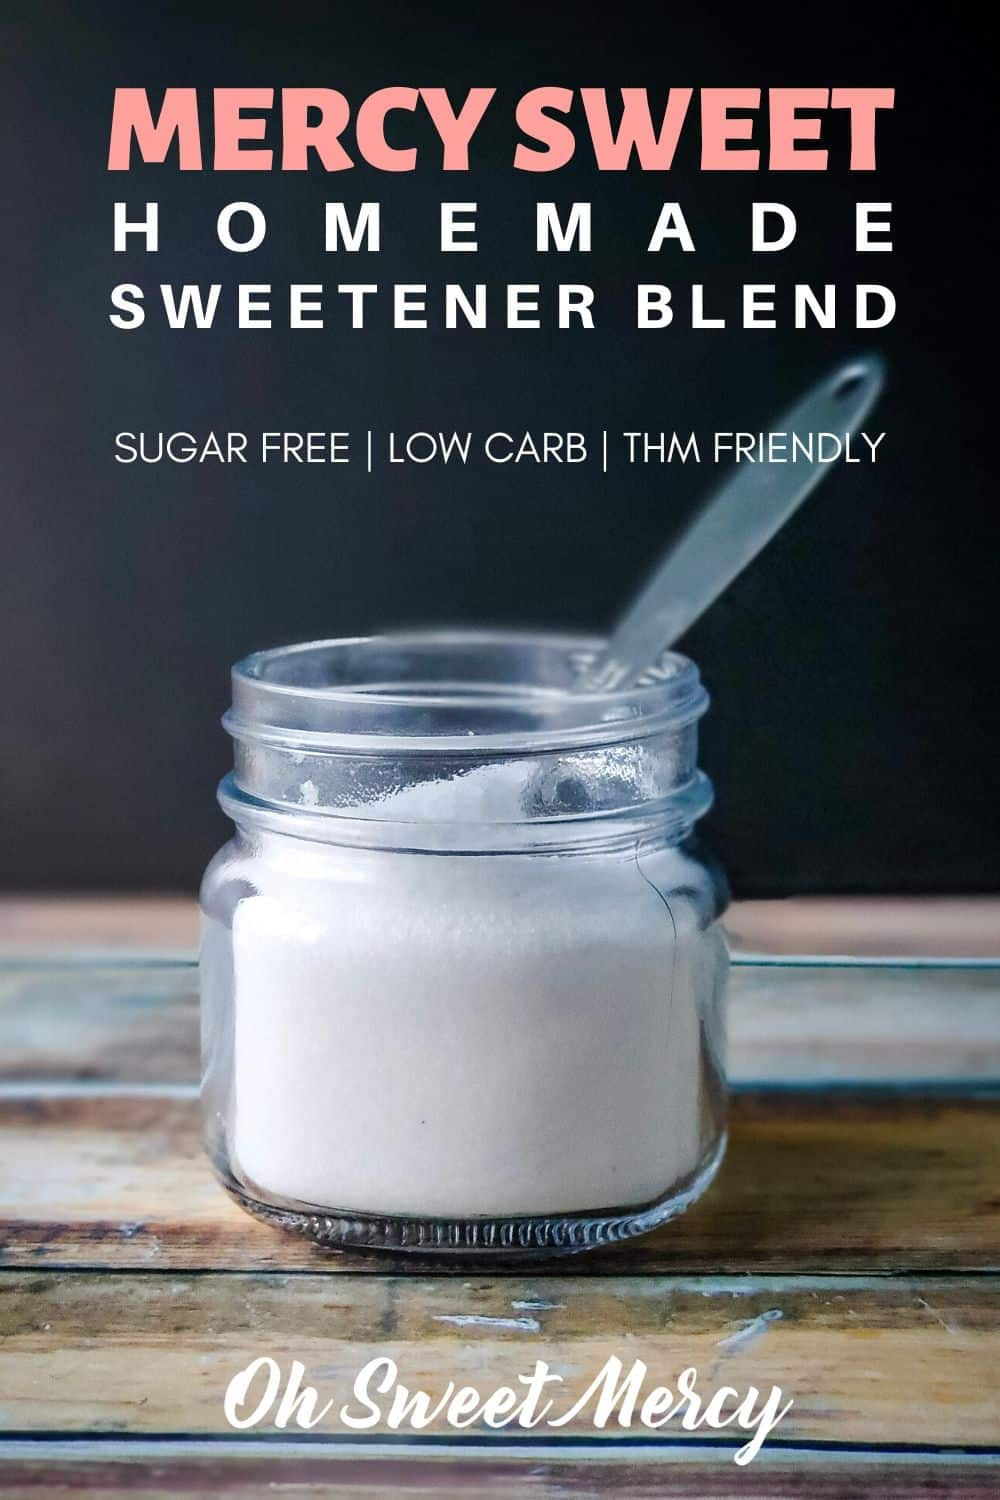 Did you run out of THM friendly sweetener? Give my Mercy Sweet sweetener blend a try! Super easy to make, economical, and perfect for your low carb and sugar free recipes. #lowcarb #sugarfree #keto #sweetenerblend #thm